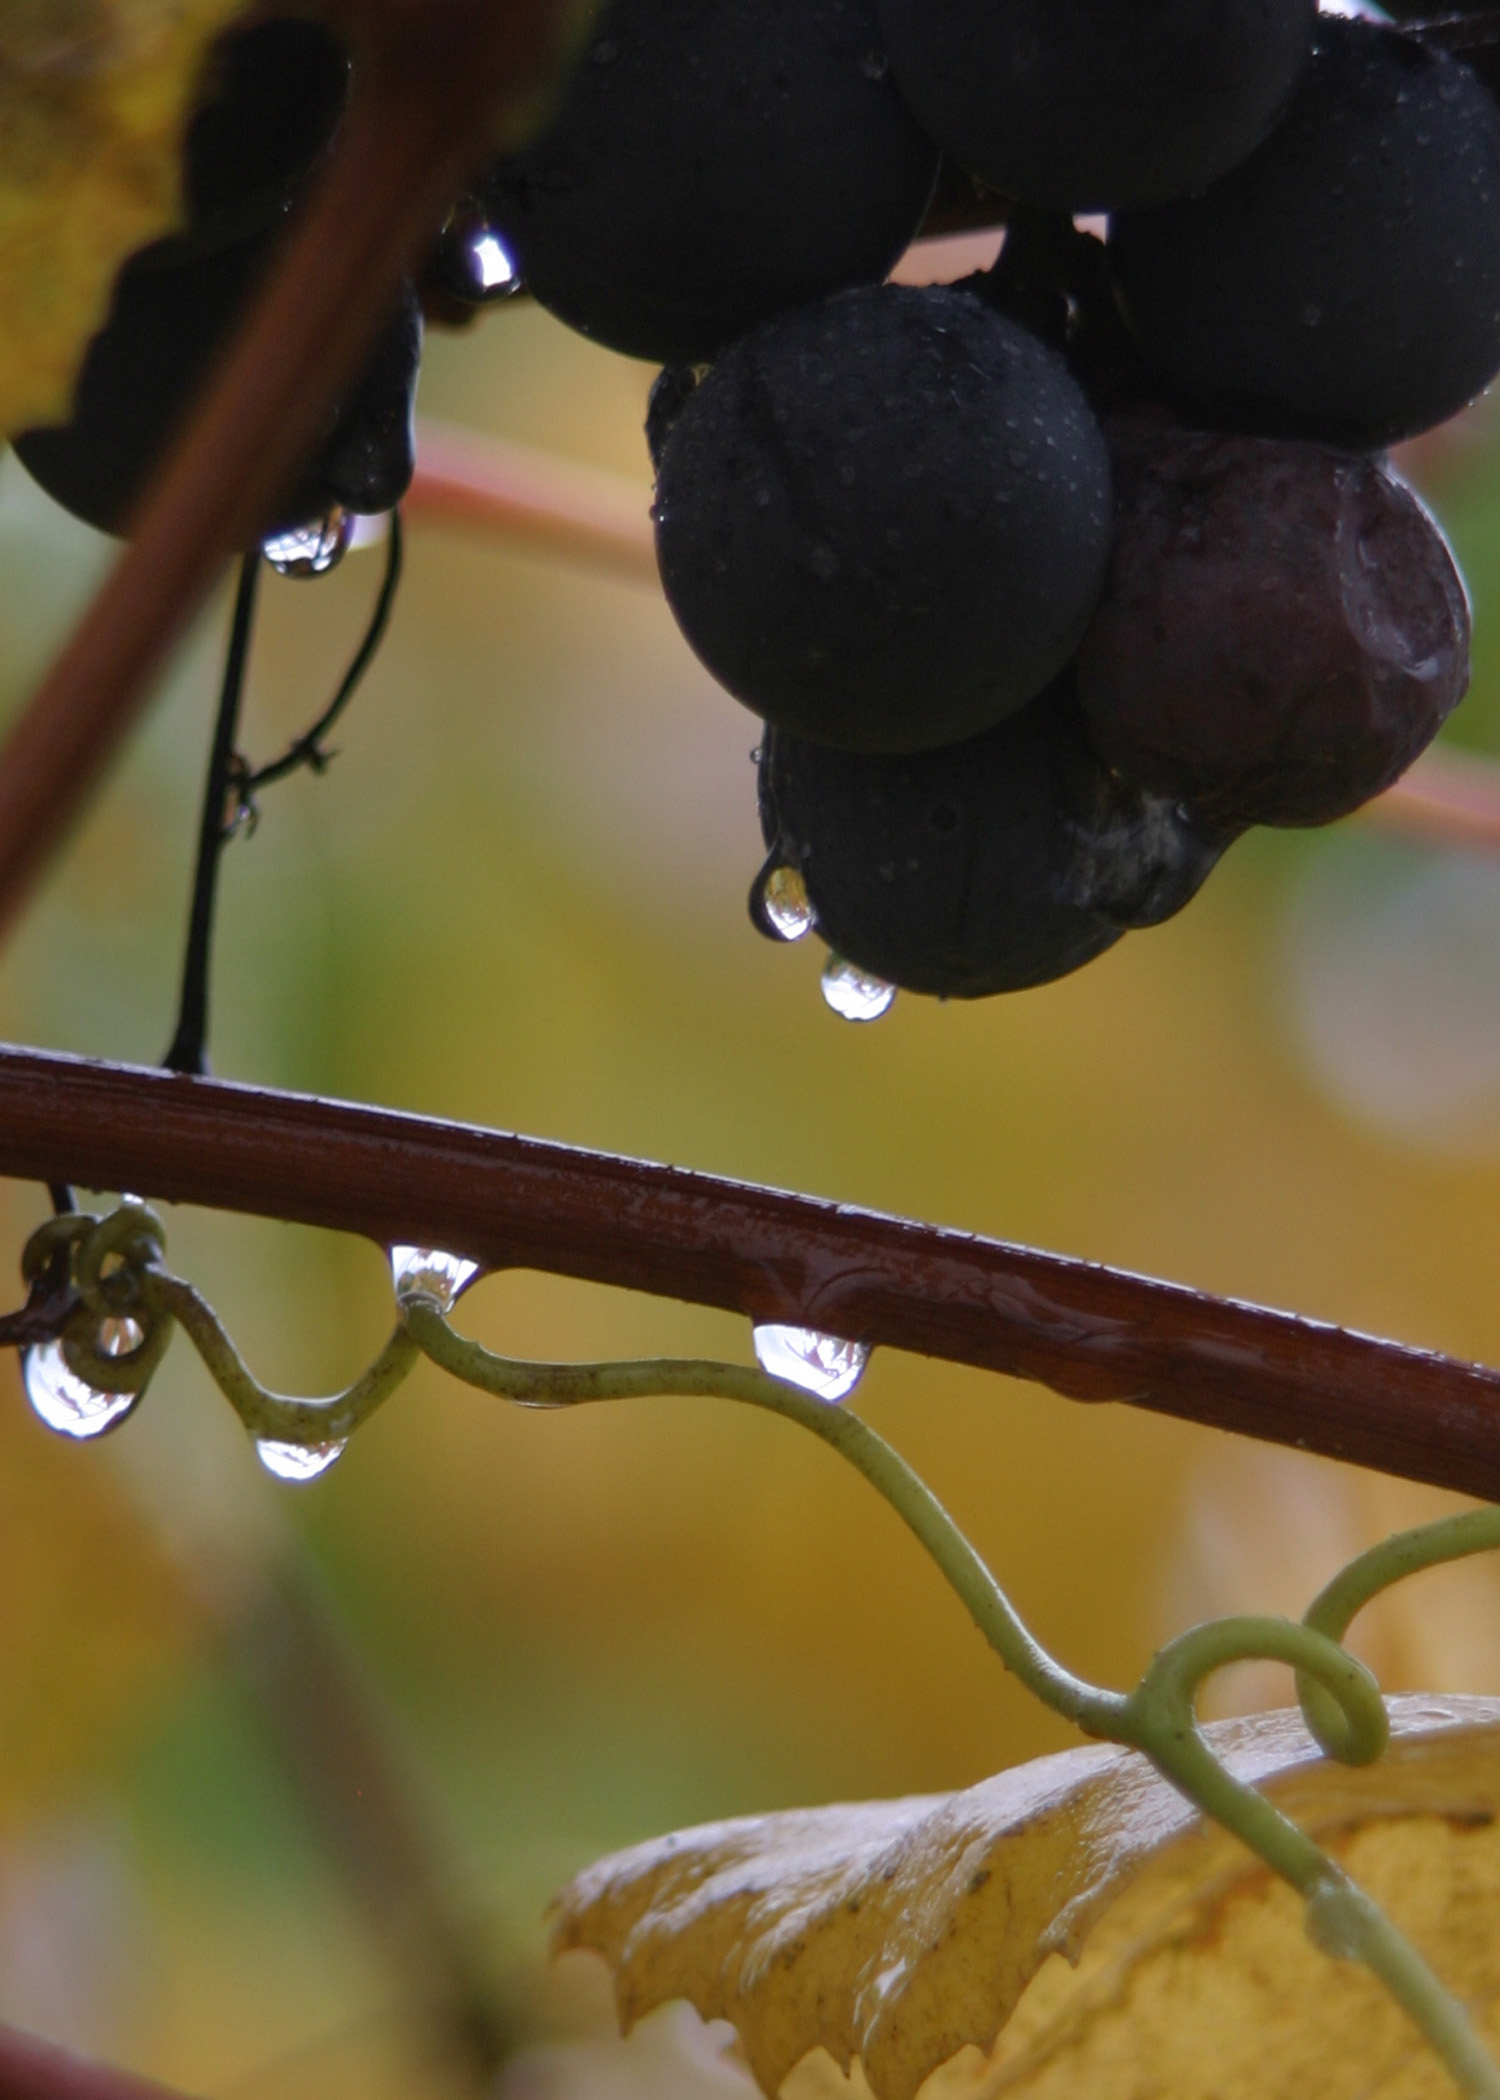 Grapes after rain